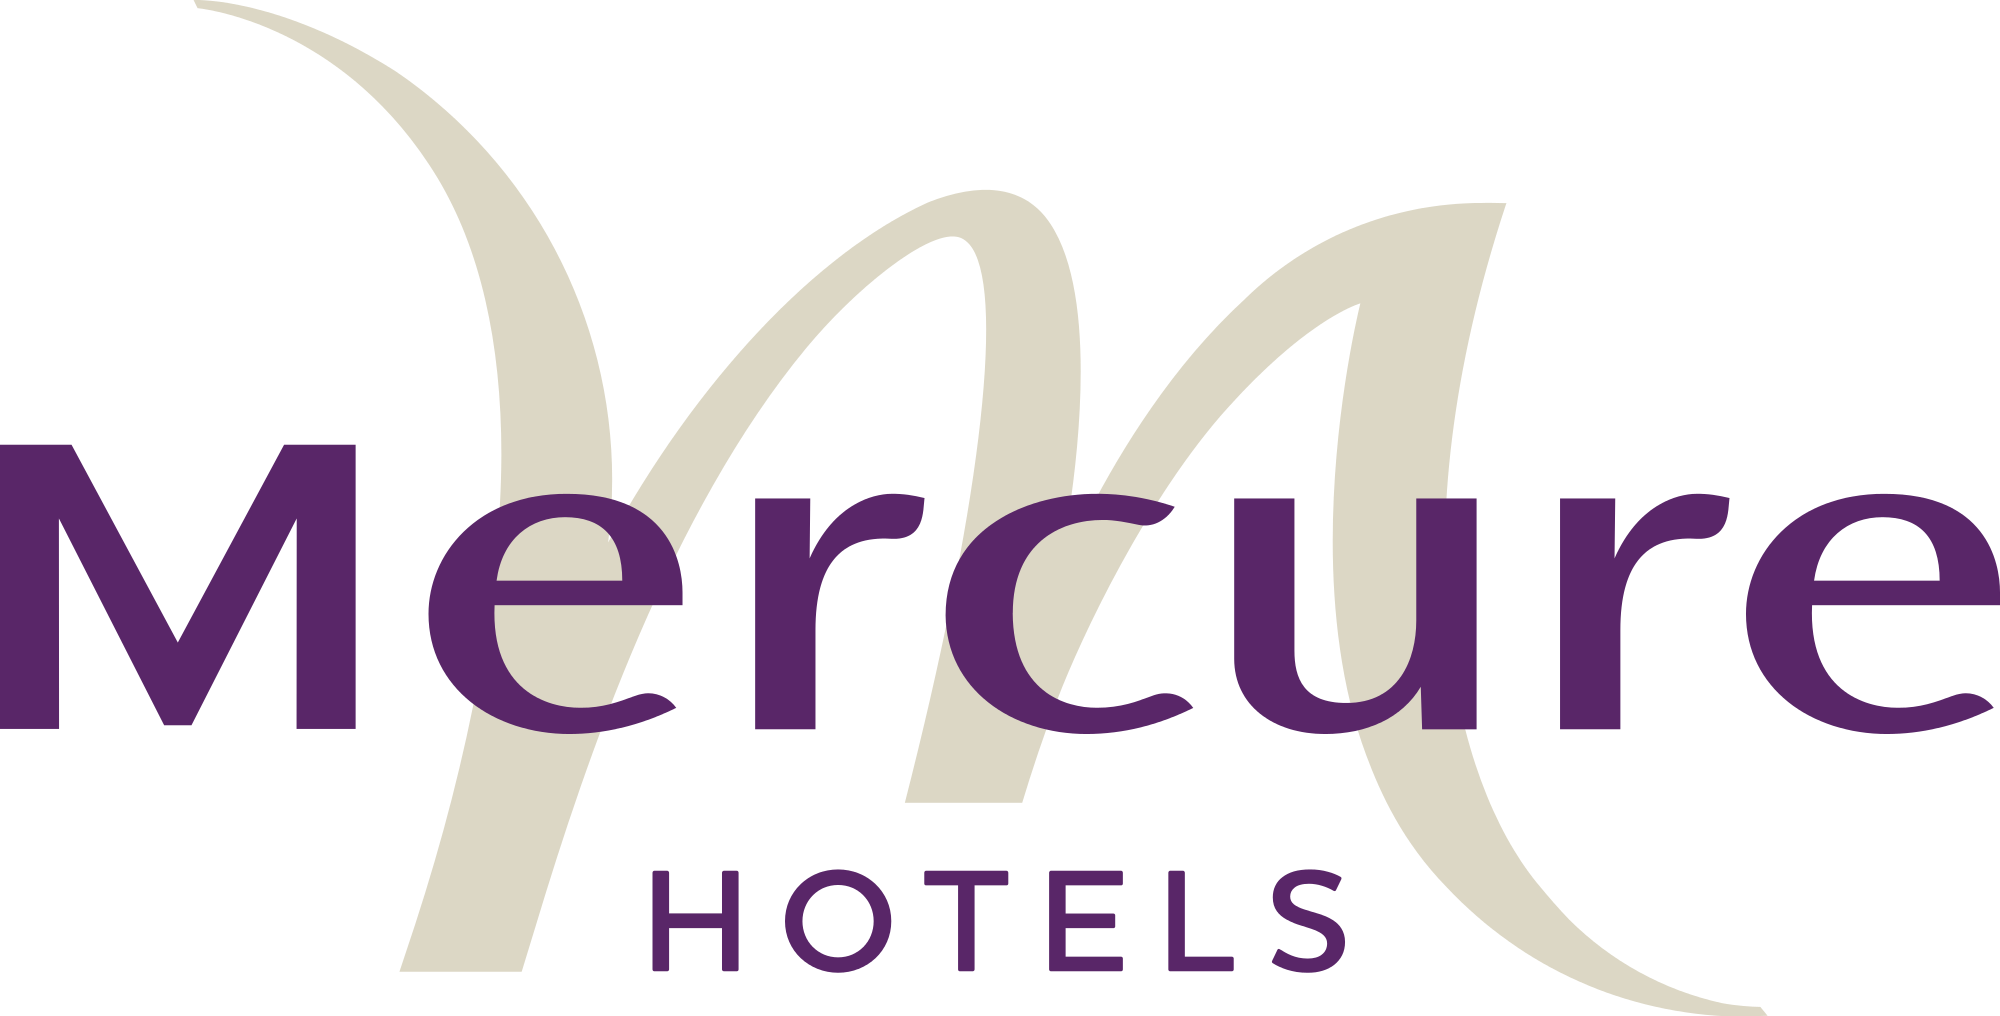 dampf-bluetooth-hotel-audio-mercure-hotels